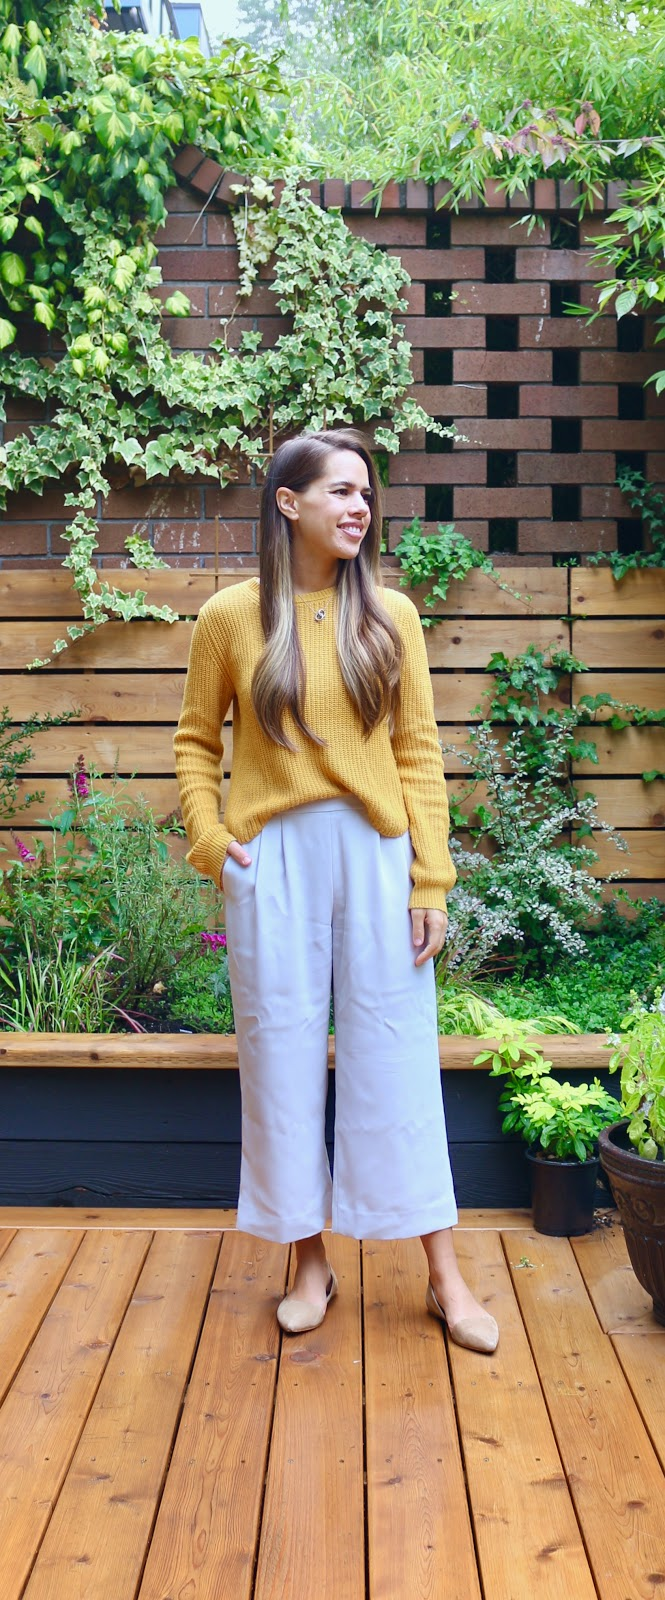 Jules in Flats - Mustard Crop Sweater with Wide Leg Pants (Business Casual Workwear on a Budget)